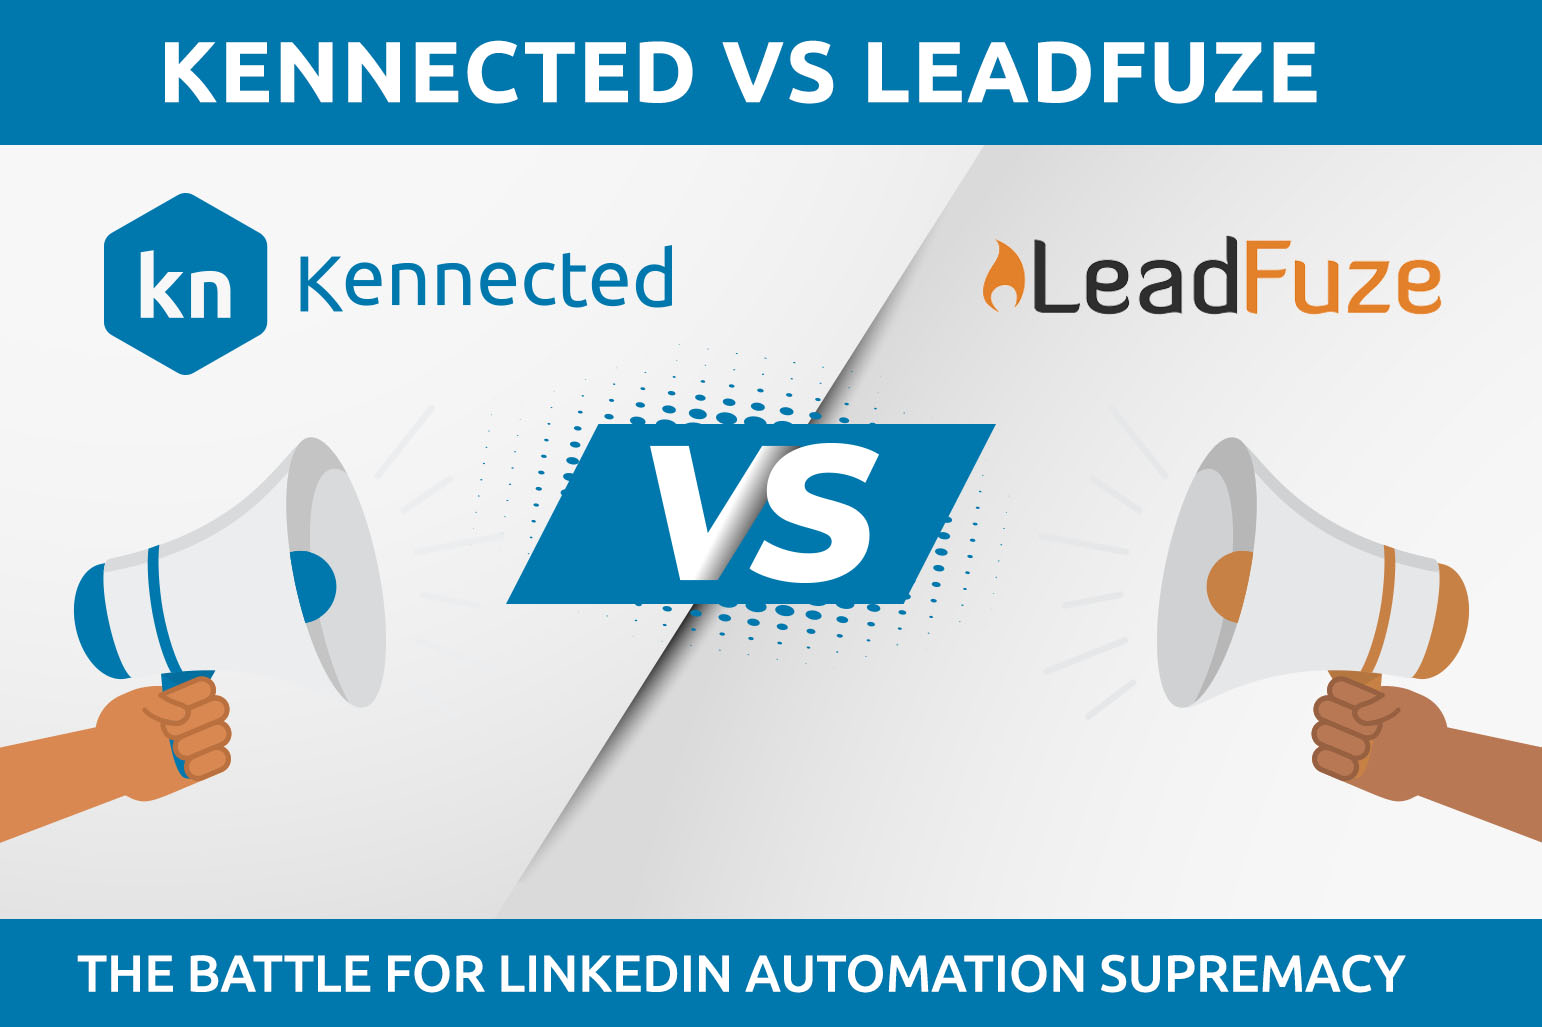 LeadFuze Vs.Kennected|LinkedInオートメーションの覇権をかけた戦い